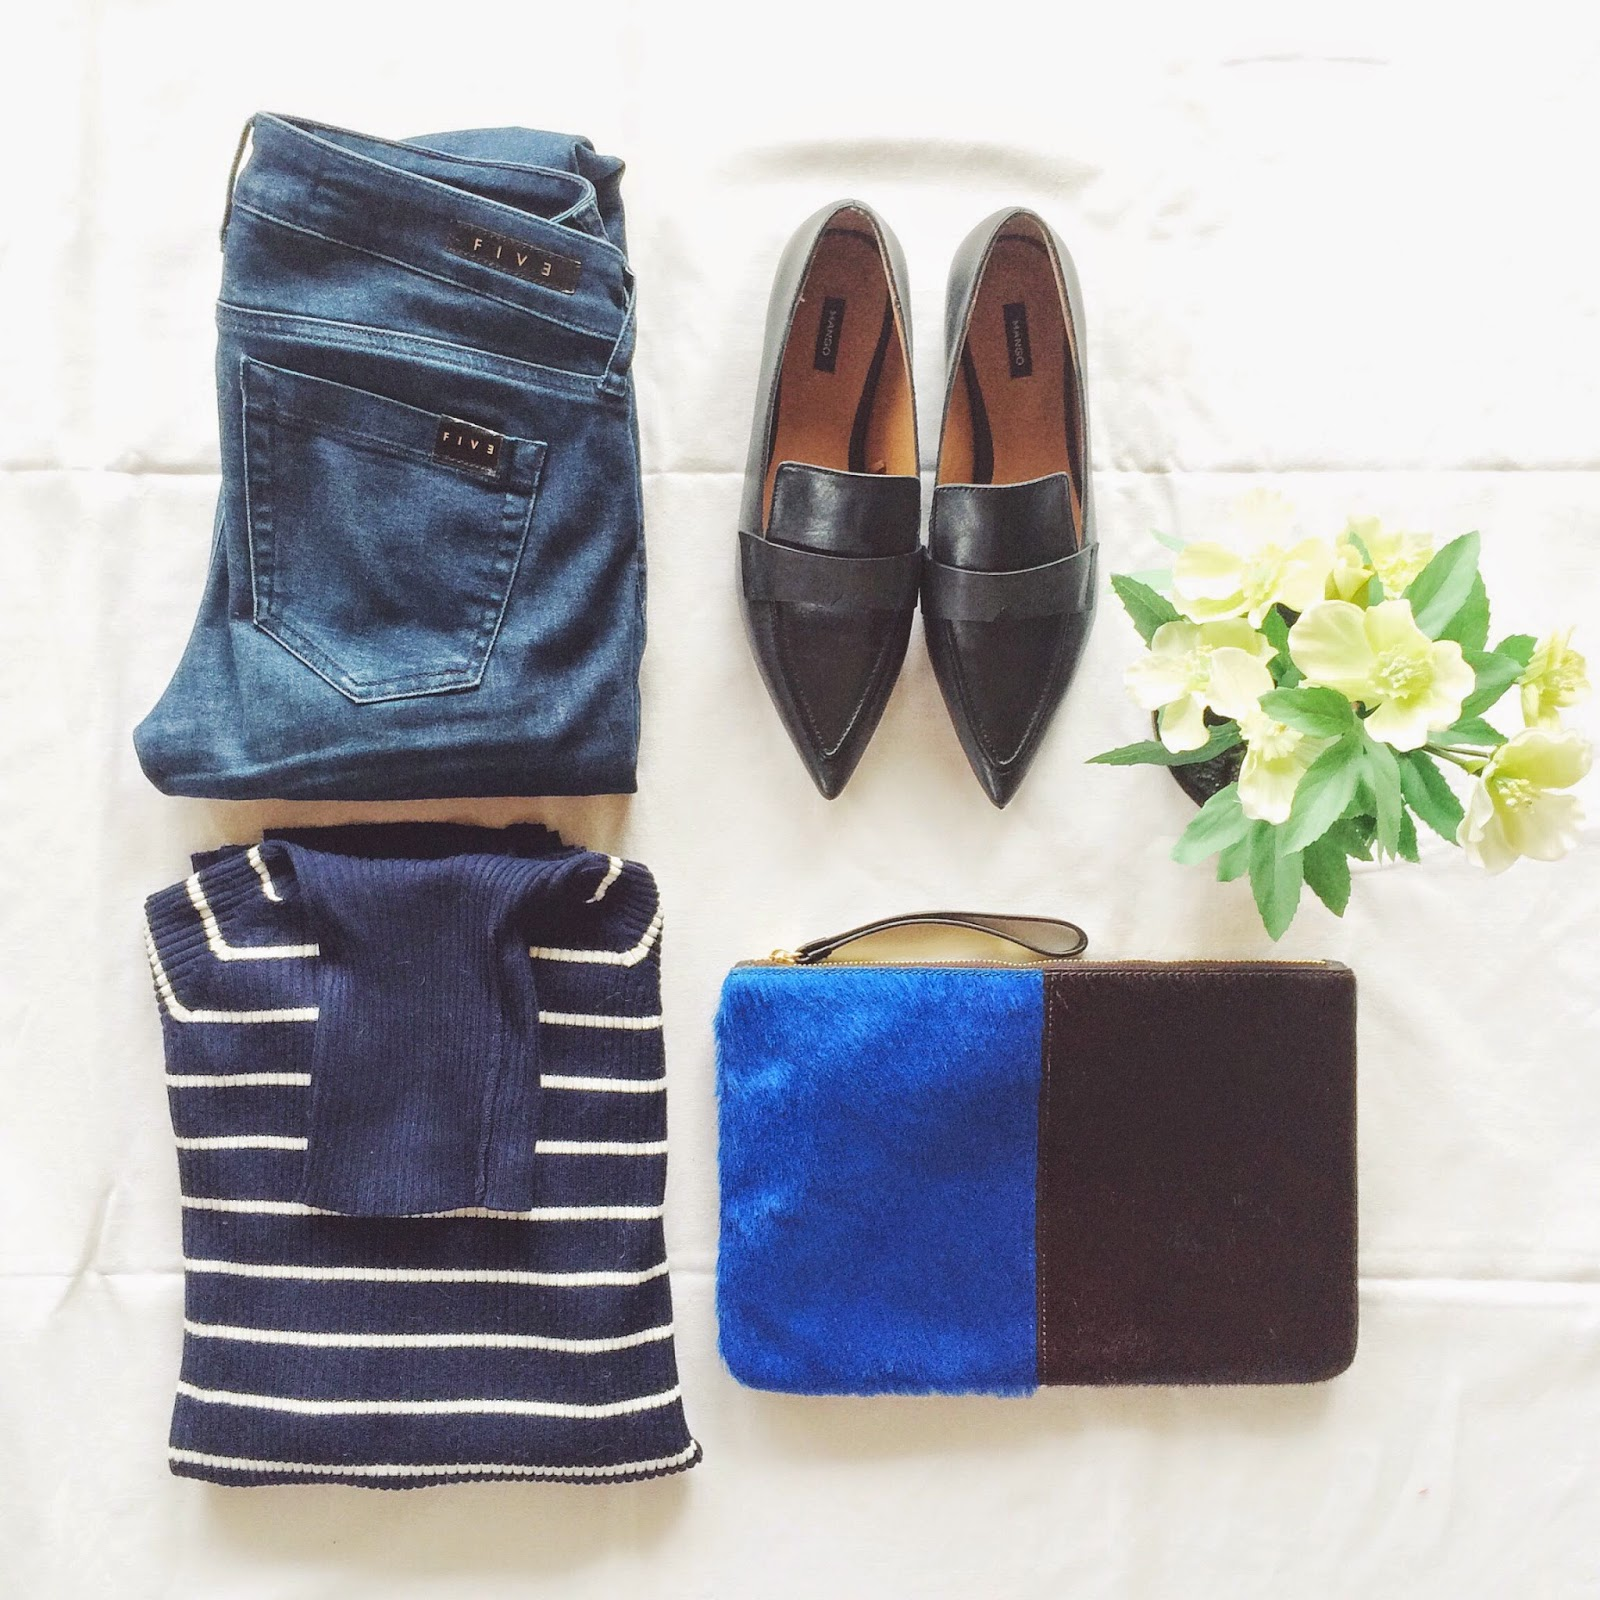 mango loafers, pointed loafers, five jeans, breton striped turtleneck jumper, jaunt accessories clutch, ponyhair clutch, fltalay flatlaying